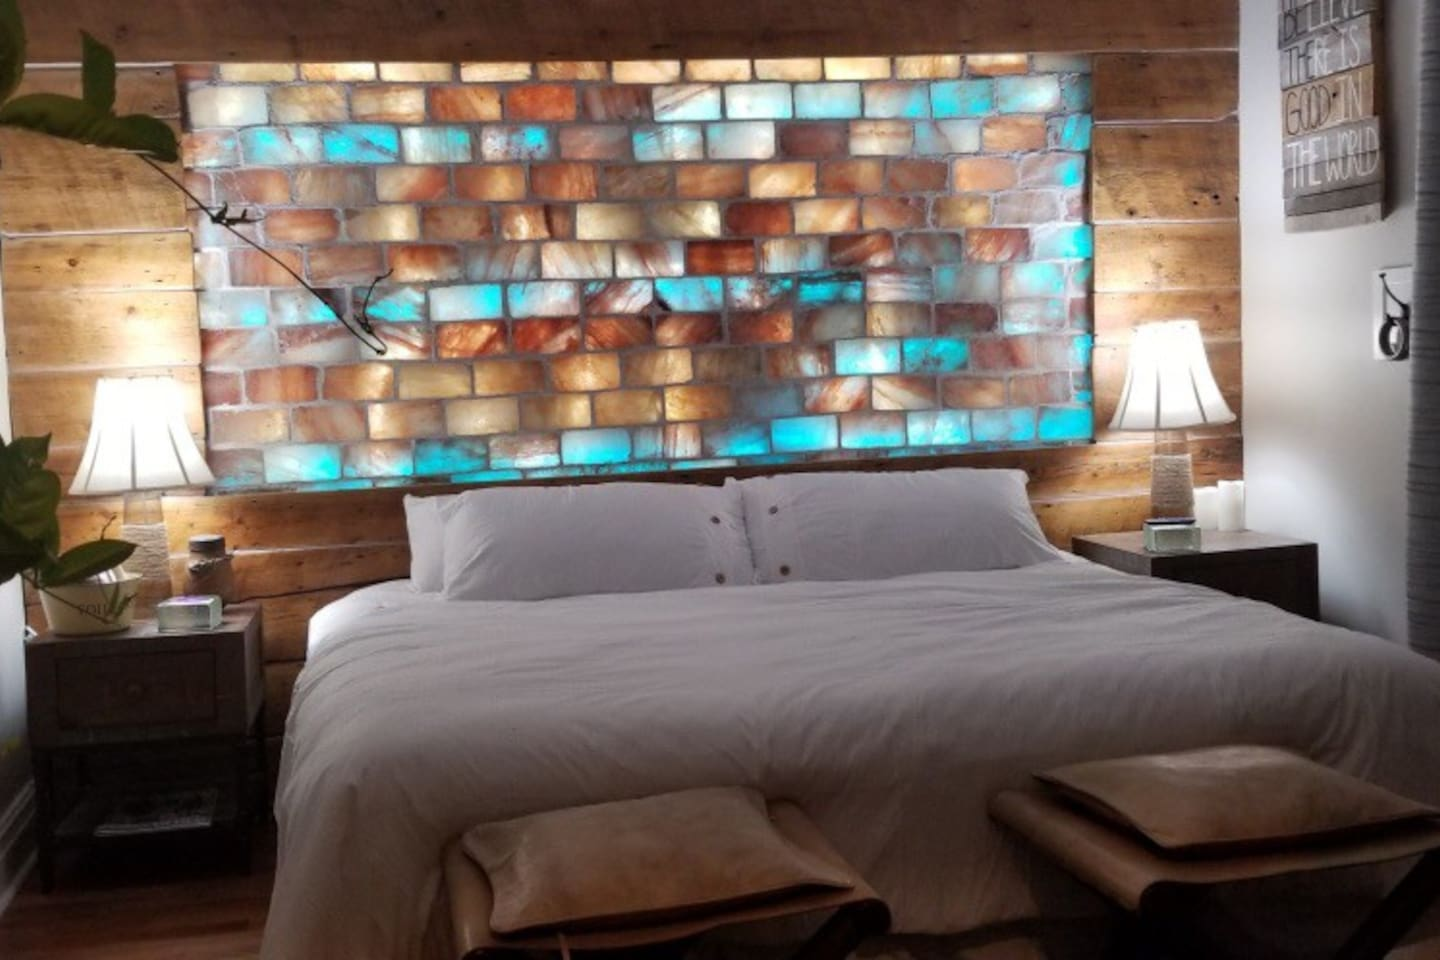 Himalayan Salt Wall as Headboard, king size bed with pillow topper mattress cover, 4 king size pillows, custom side tables and luxury lamps, Full wardrobe with large clothes hanging area, and big deep drawers for clothing custom one of a kind leather foot stools top off the room